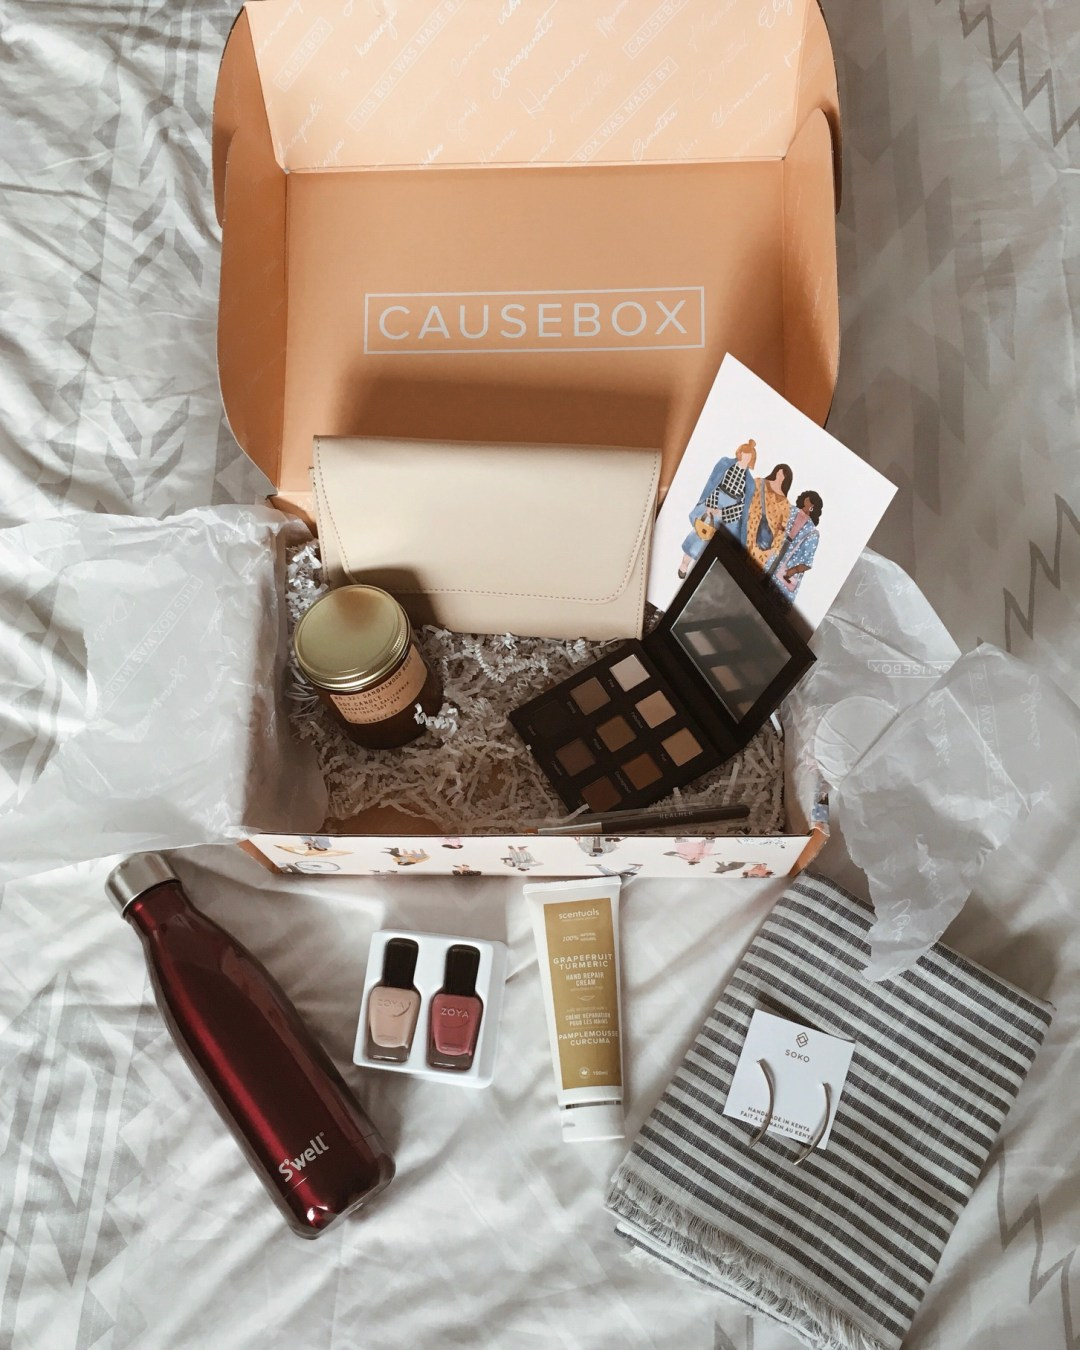 Causebox: Review and unboxing